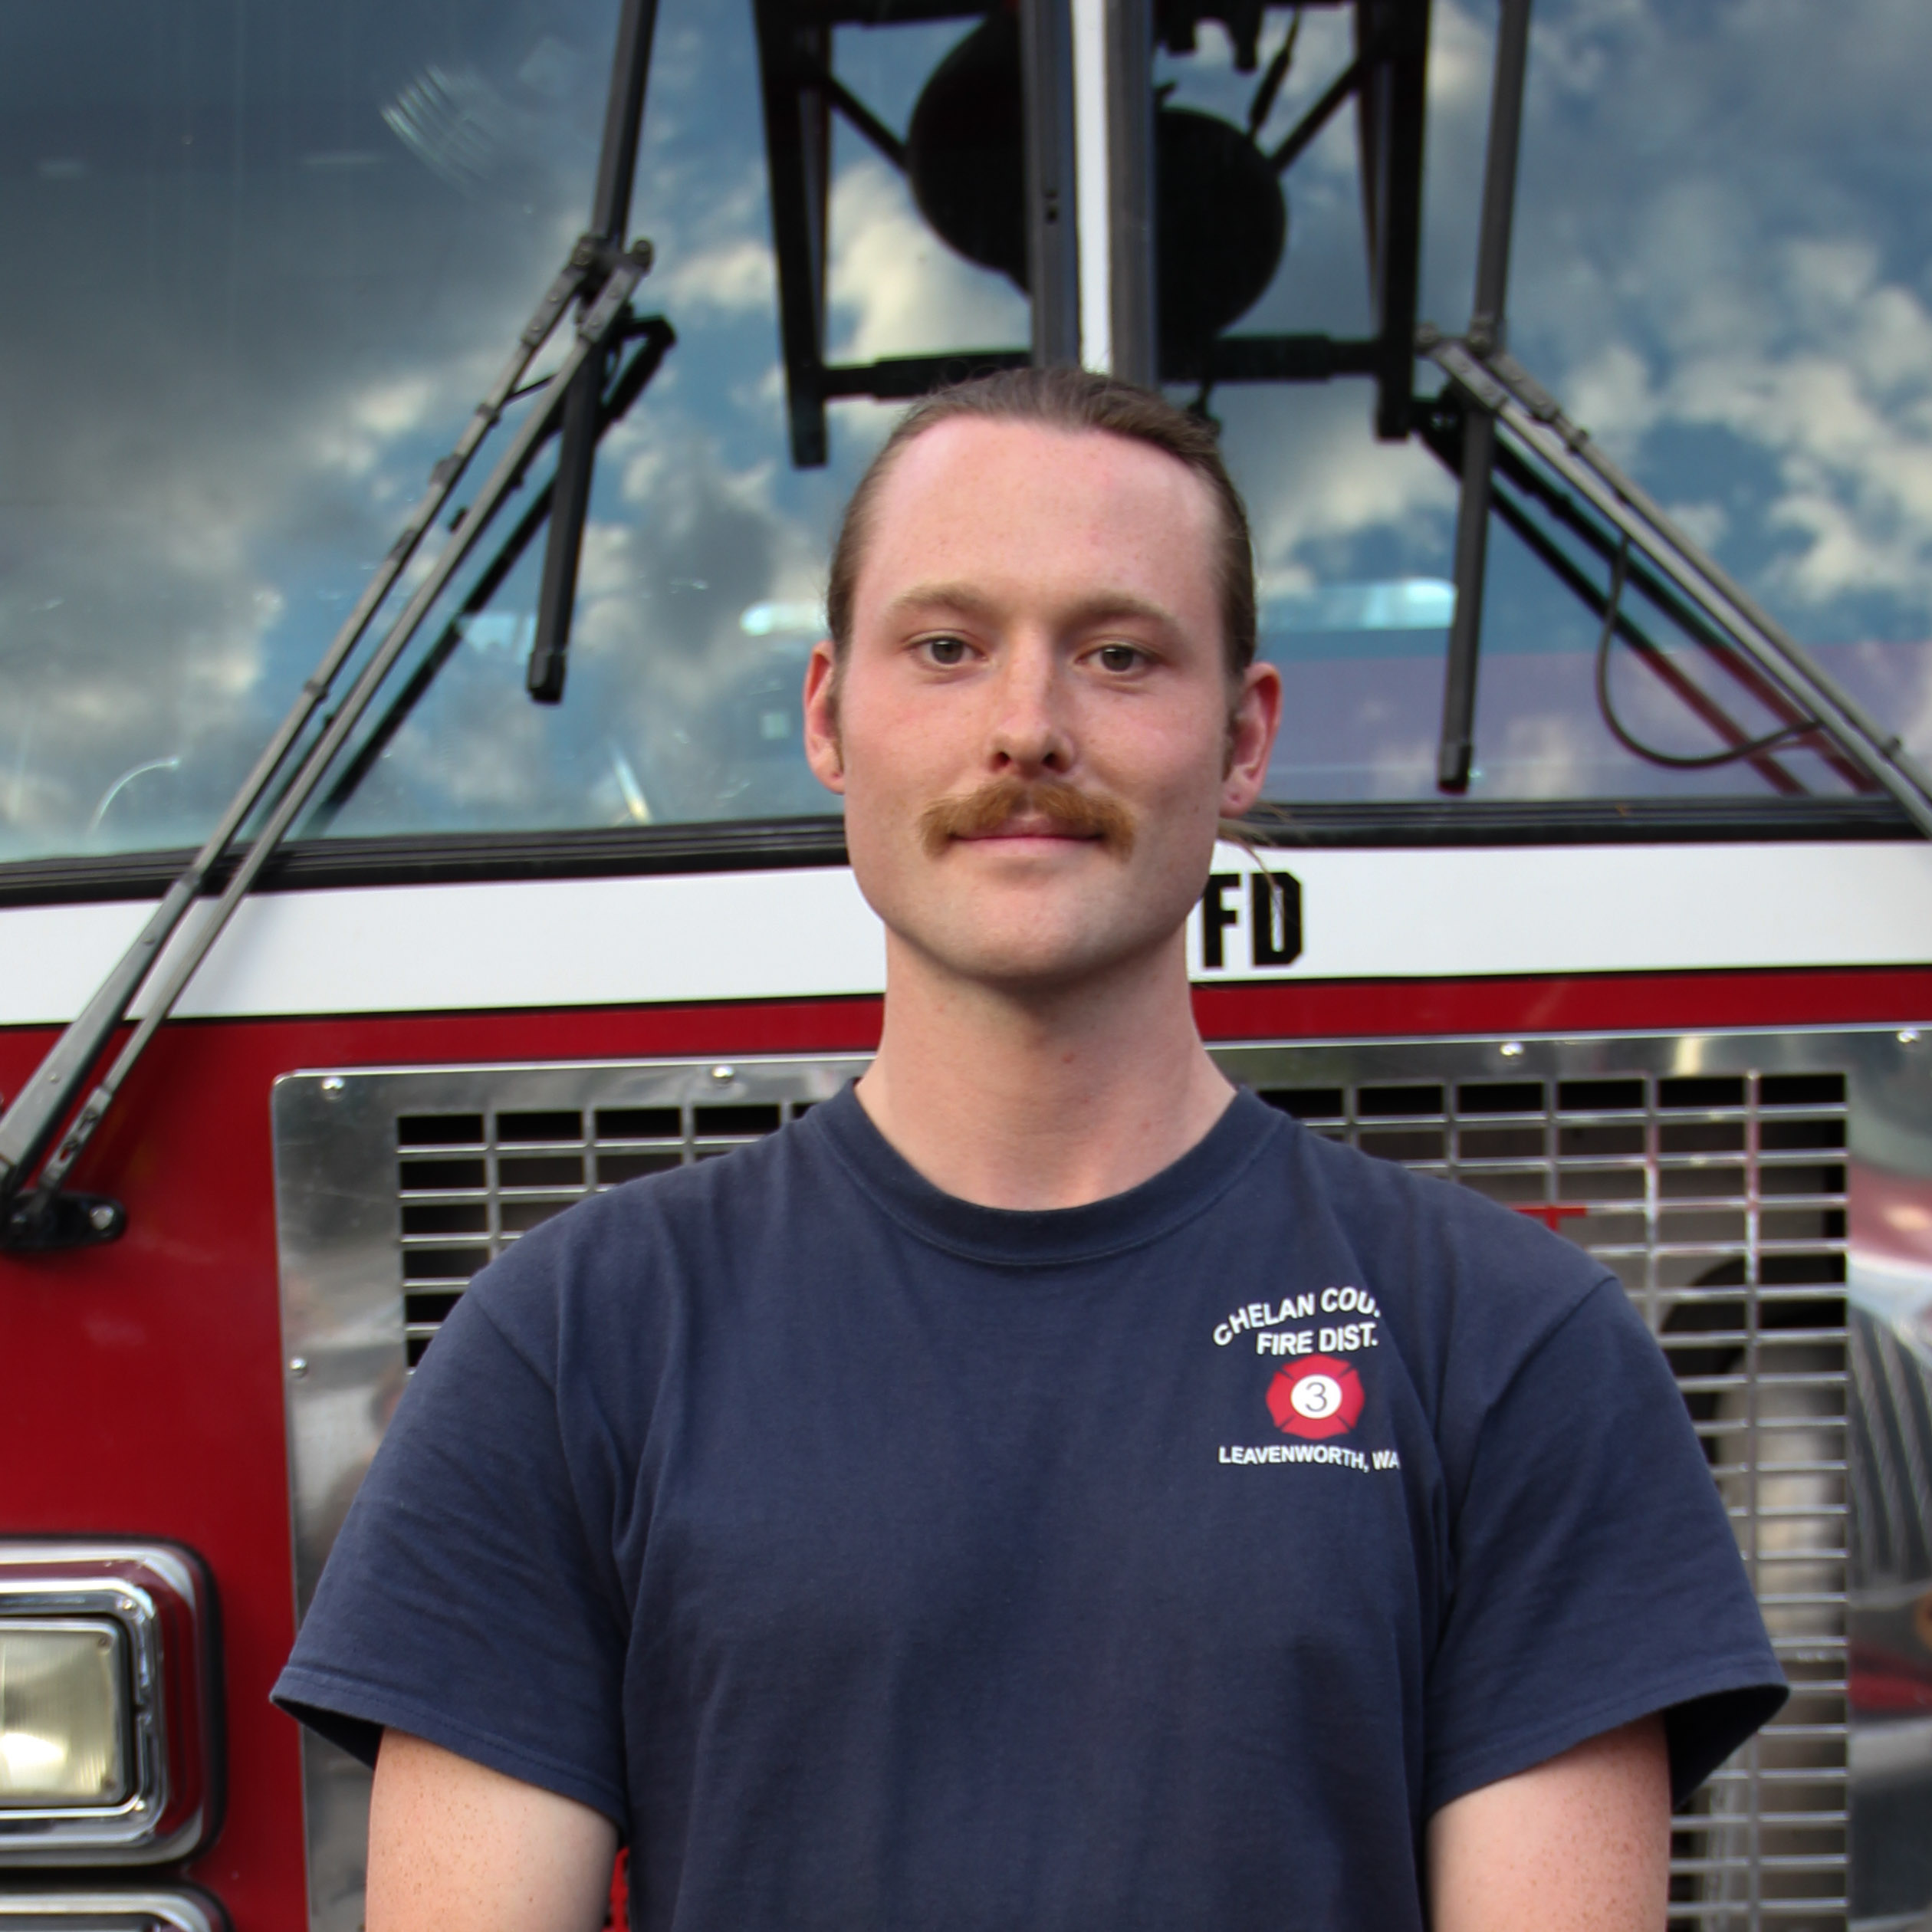 Volunteer Firefighter Charlie Petersen